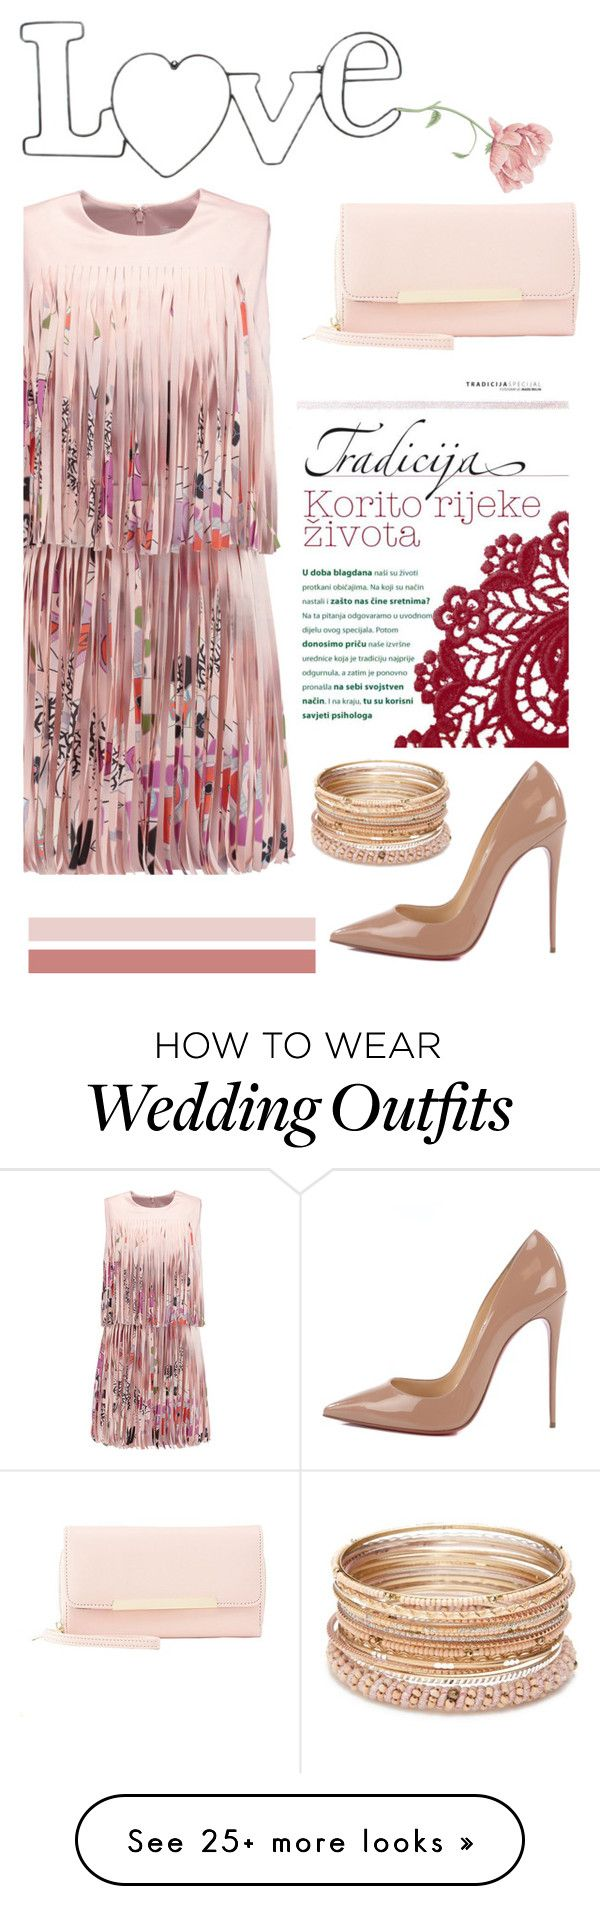 """Best Dressed Guest: Barn Weddings"" by burpy on Polyvore featuring Alexis, Charlotte Russe, Christian Louboutin, Red Camel and rustic"